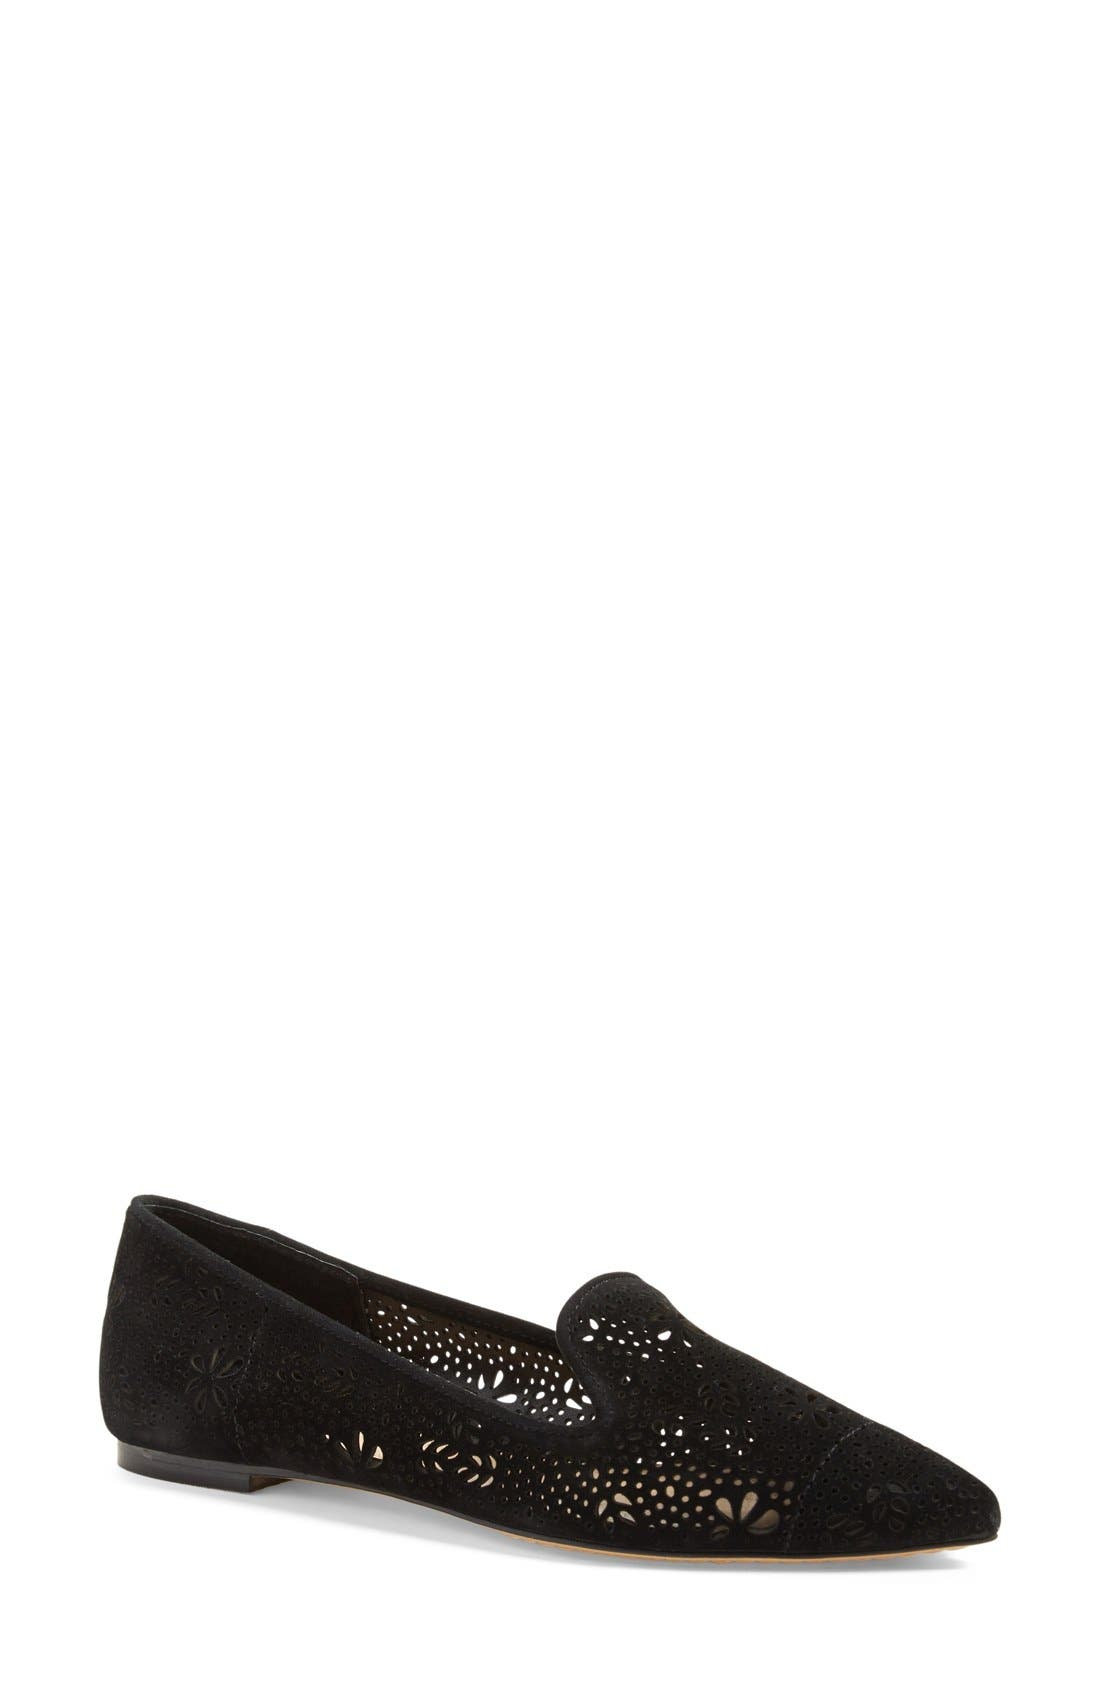 Main Image - Vince Camuto 'Earina' Perforated Flat (Women) (Nordstrom Exclusive)